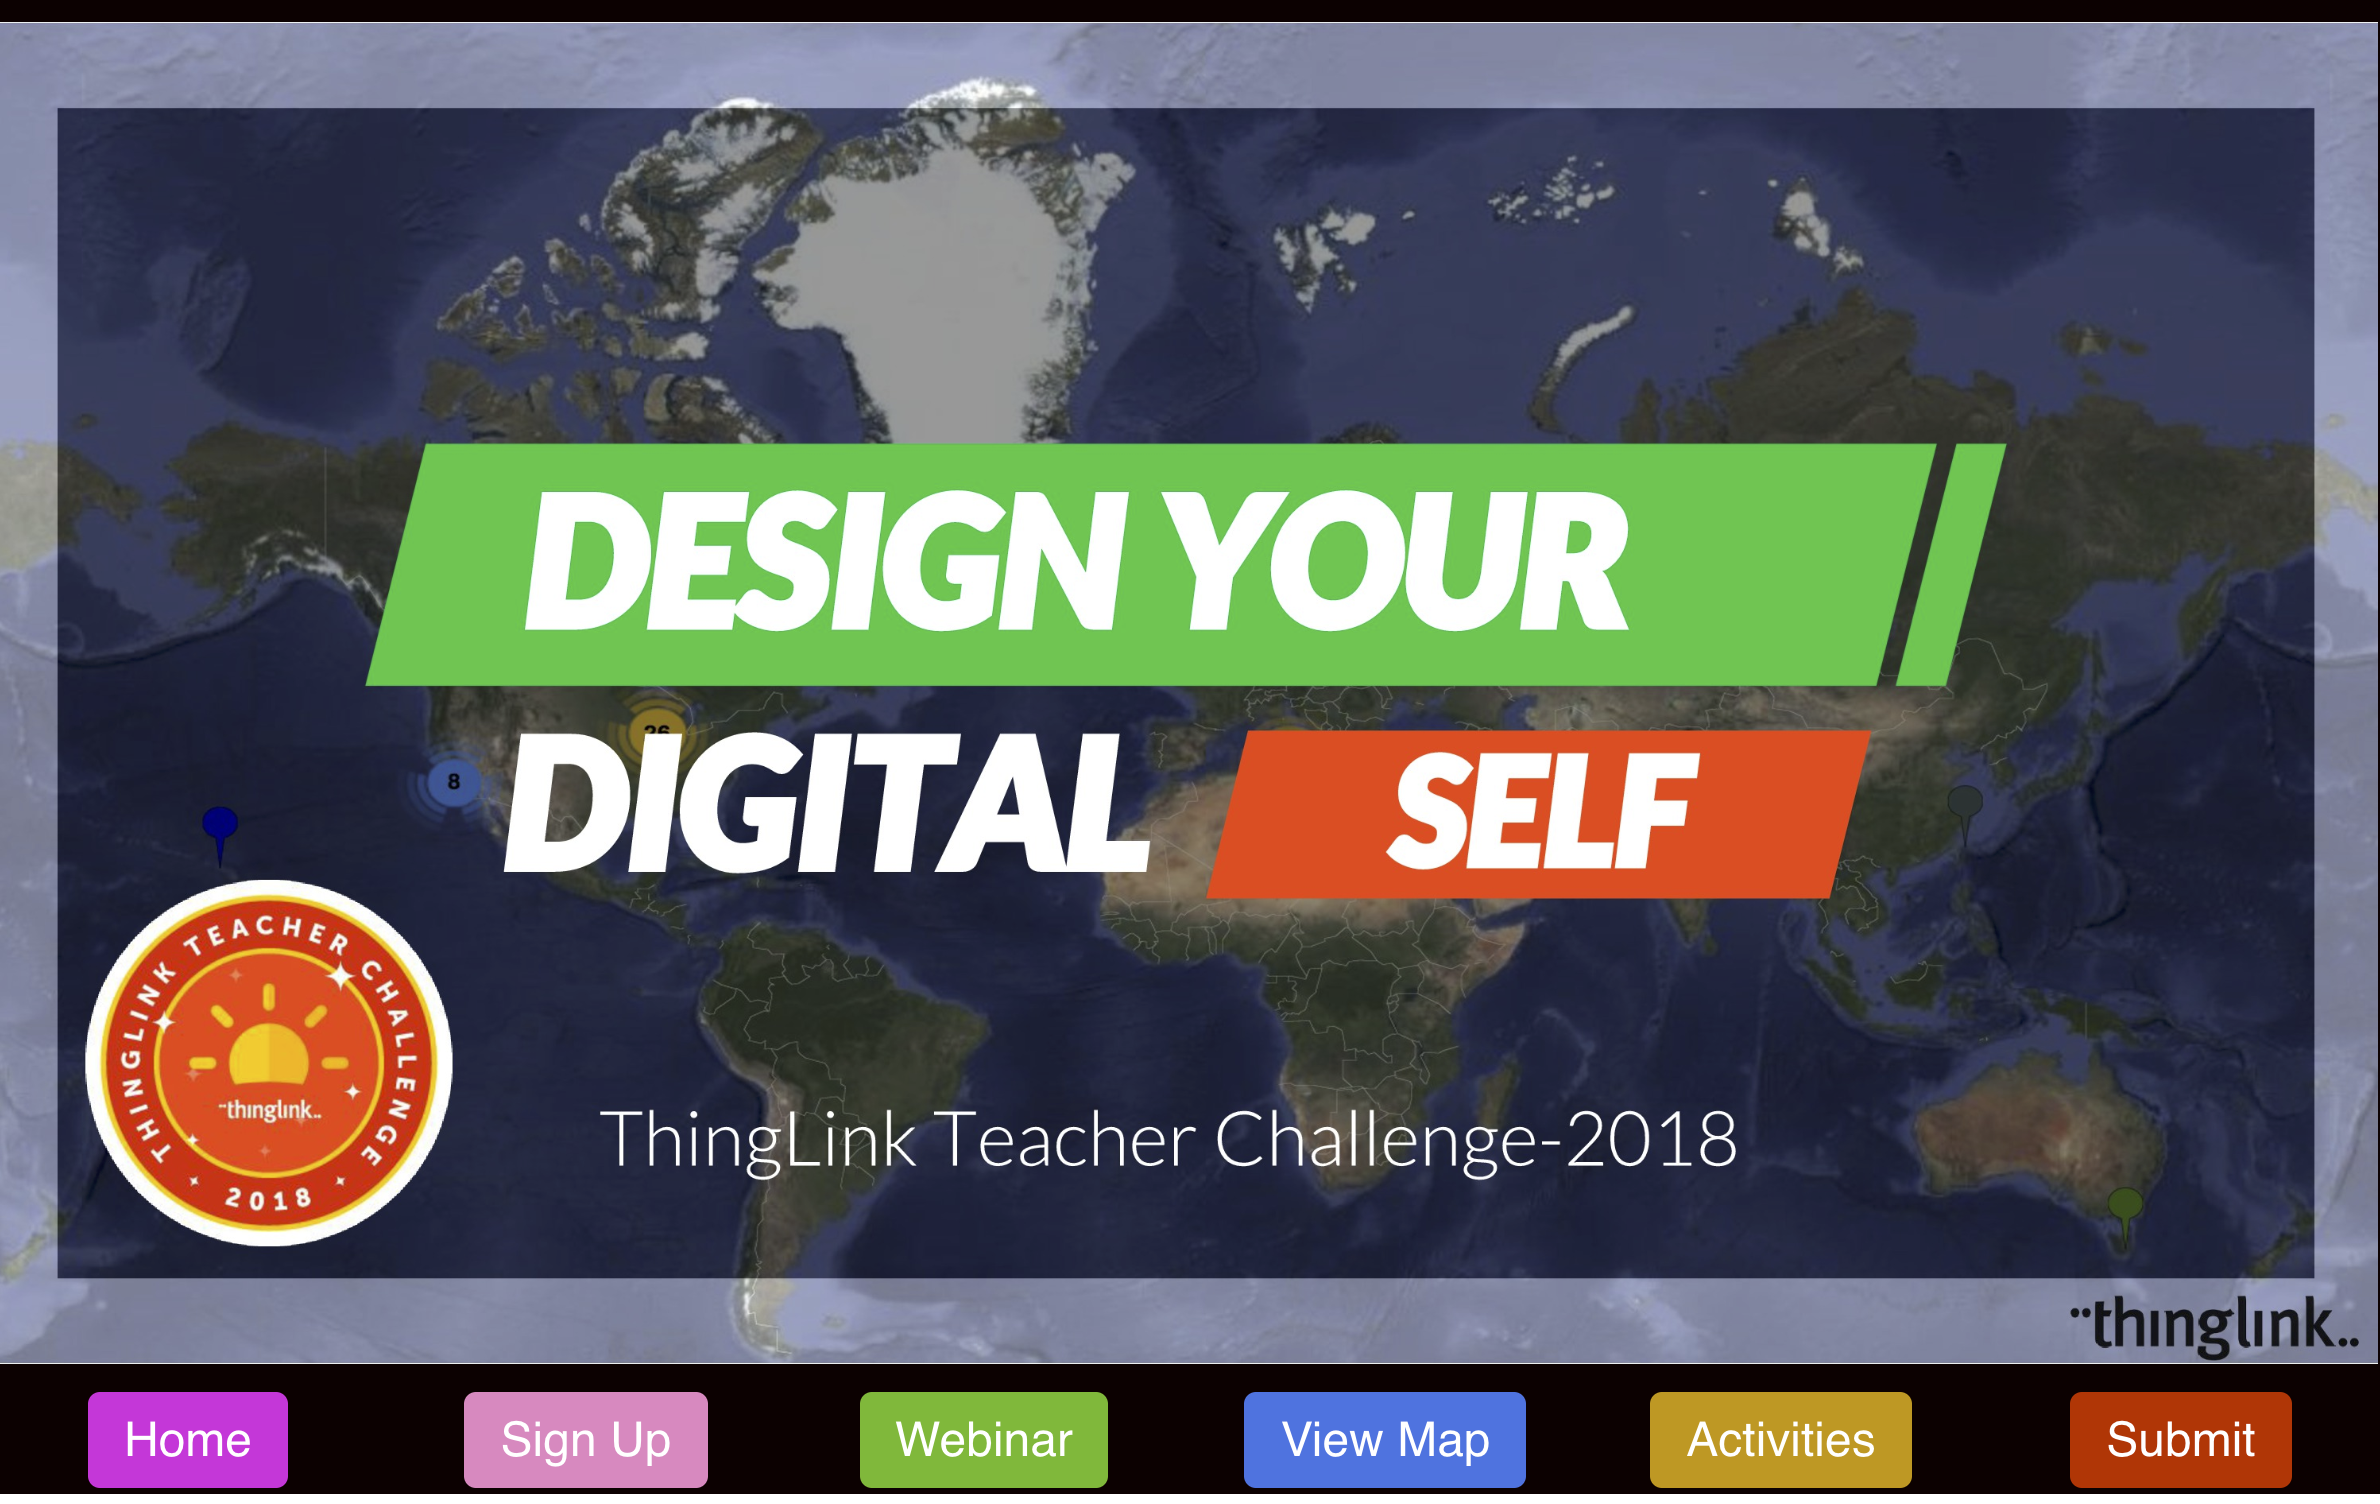 Design Your Digital Self